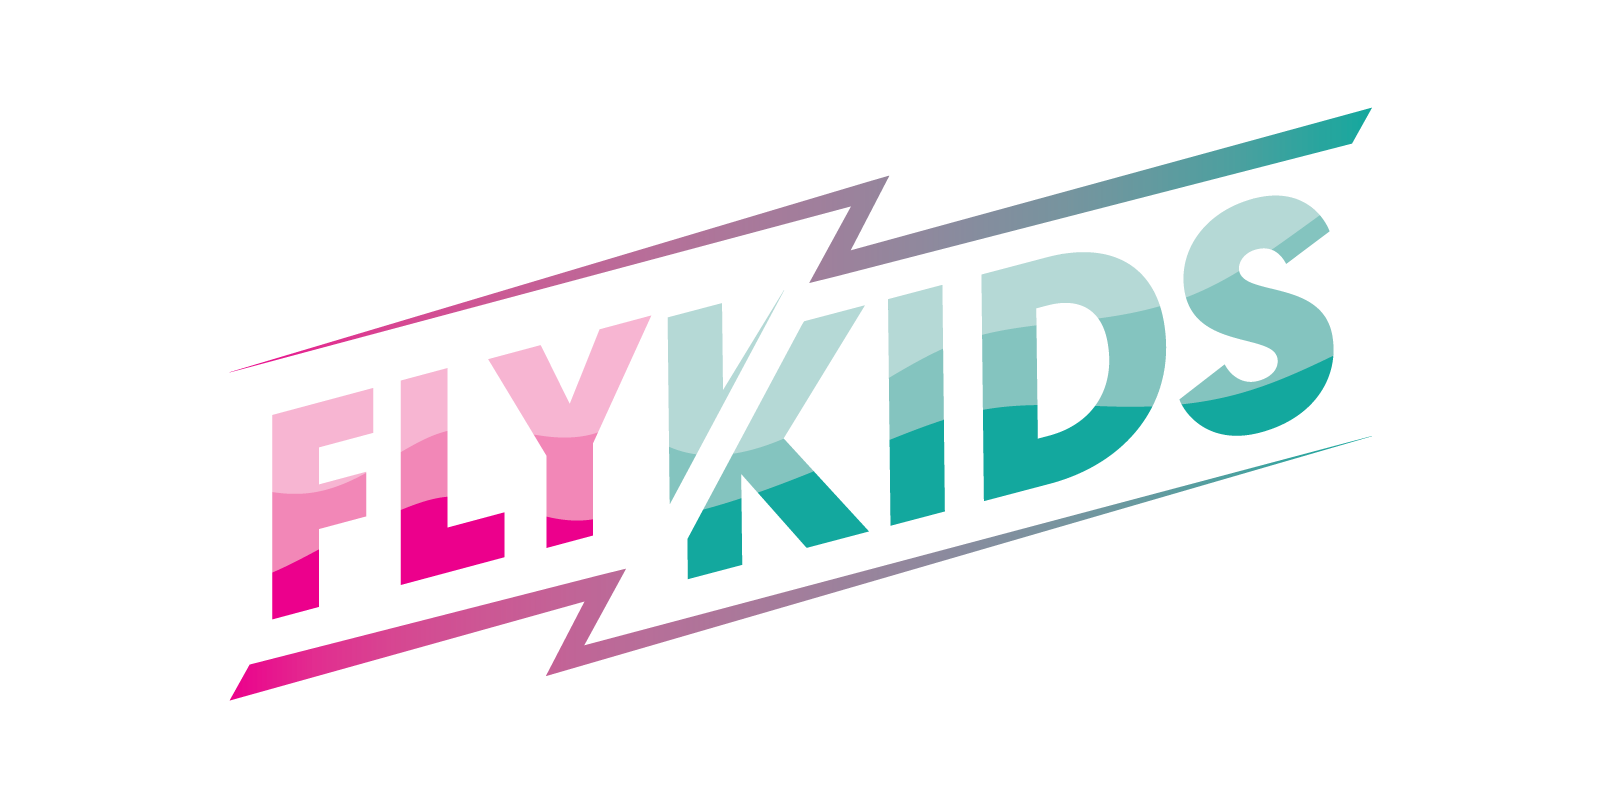 //fly-park.eu/jaworzno/wp-content/uploads/sites/4/2020/03/FlyKIDS_logo-e1583752225786.png